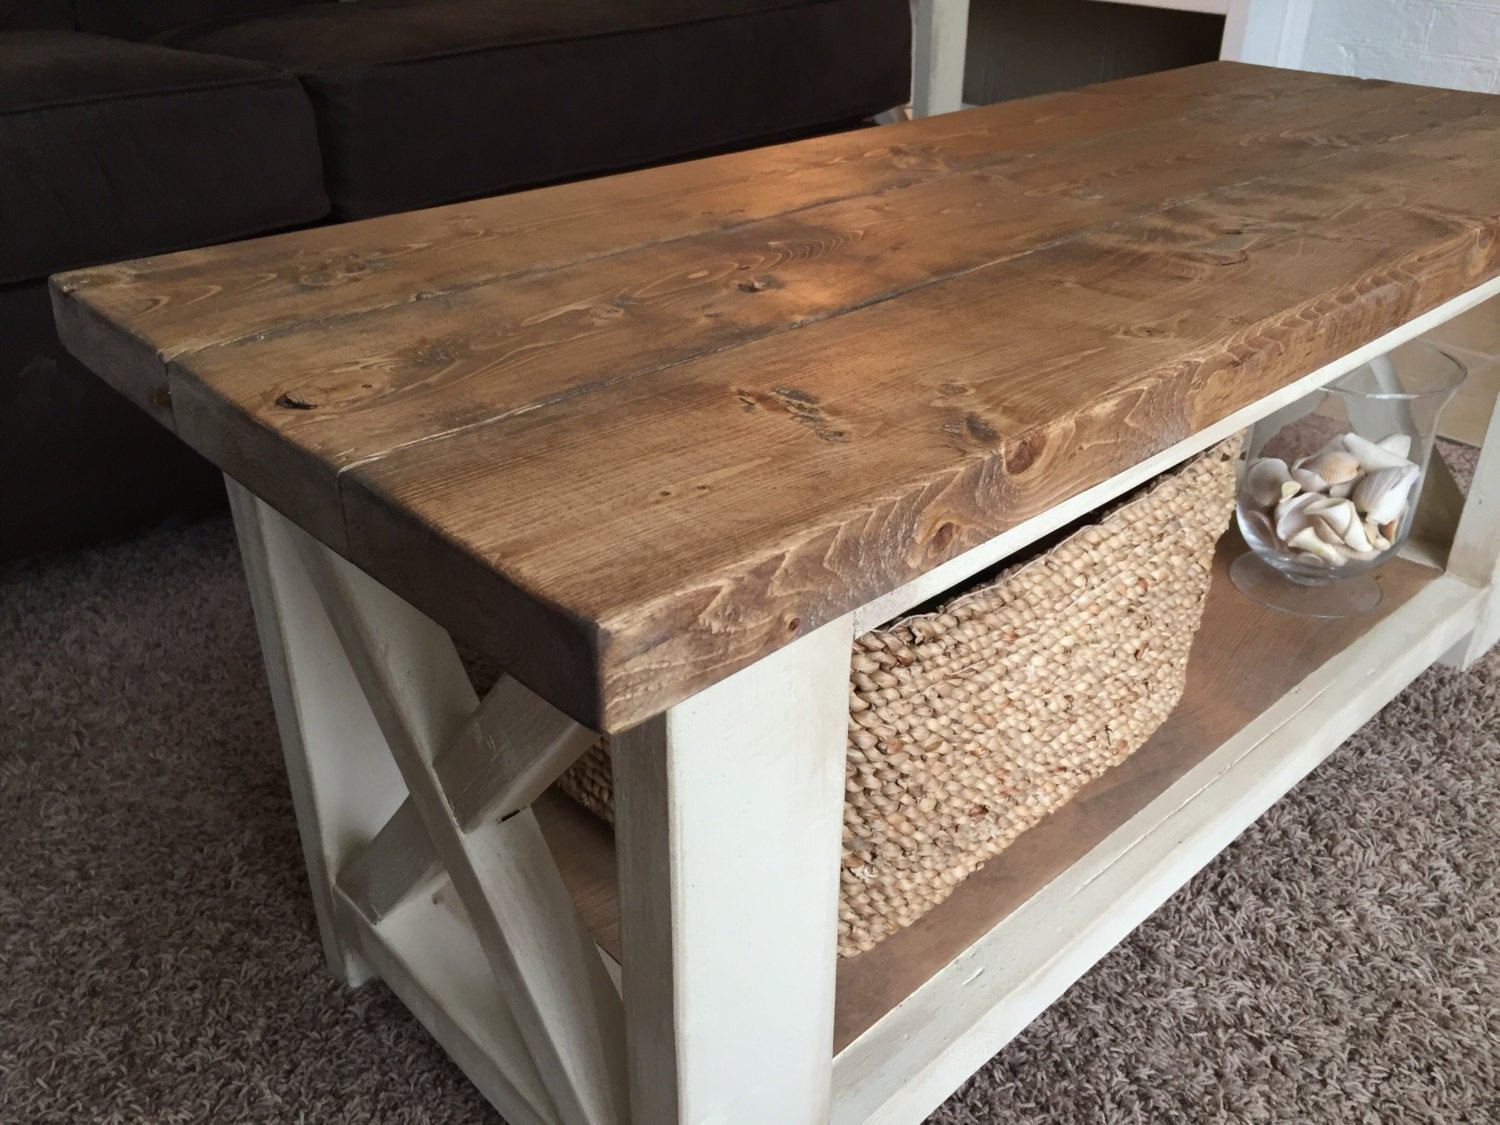 Best ideas about Farmhouse Coffee Table . Save or Pin Custom Farmhouse Coffee Table Rustic Coffee Table Now.